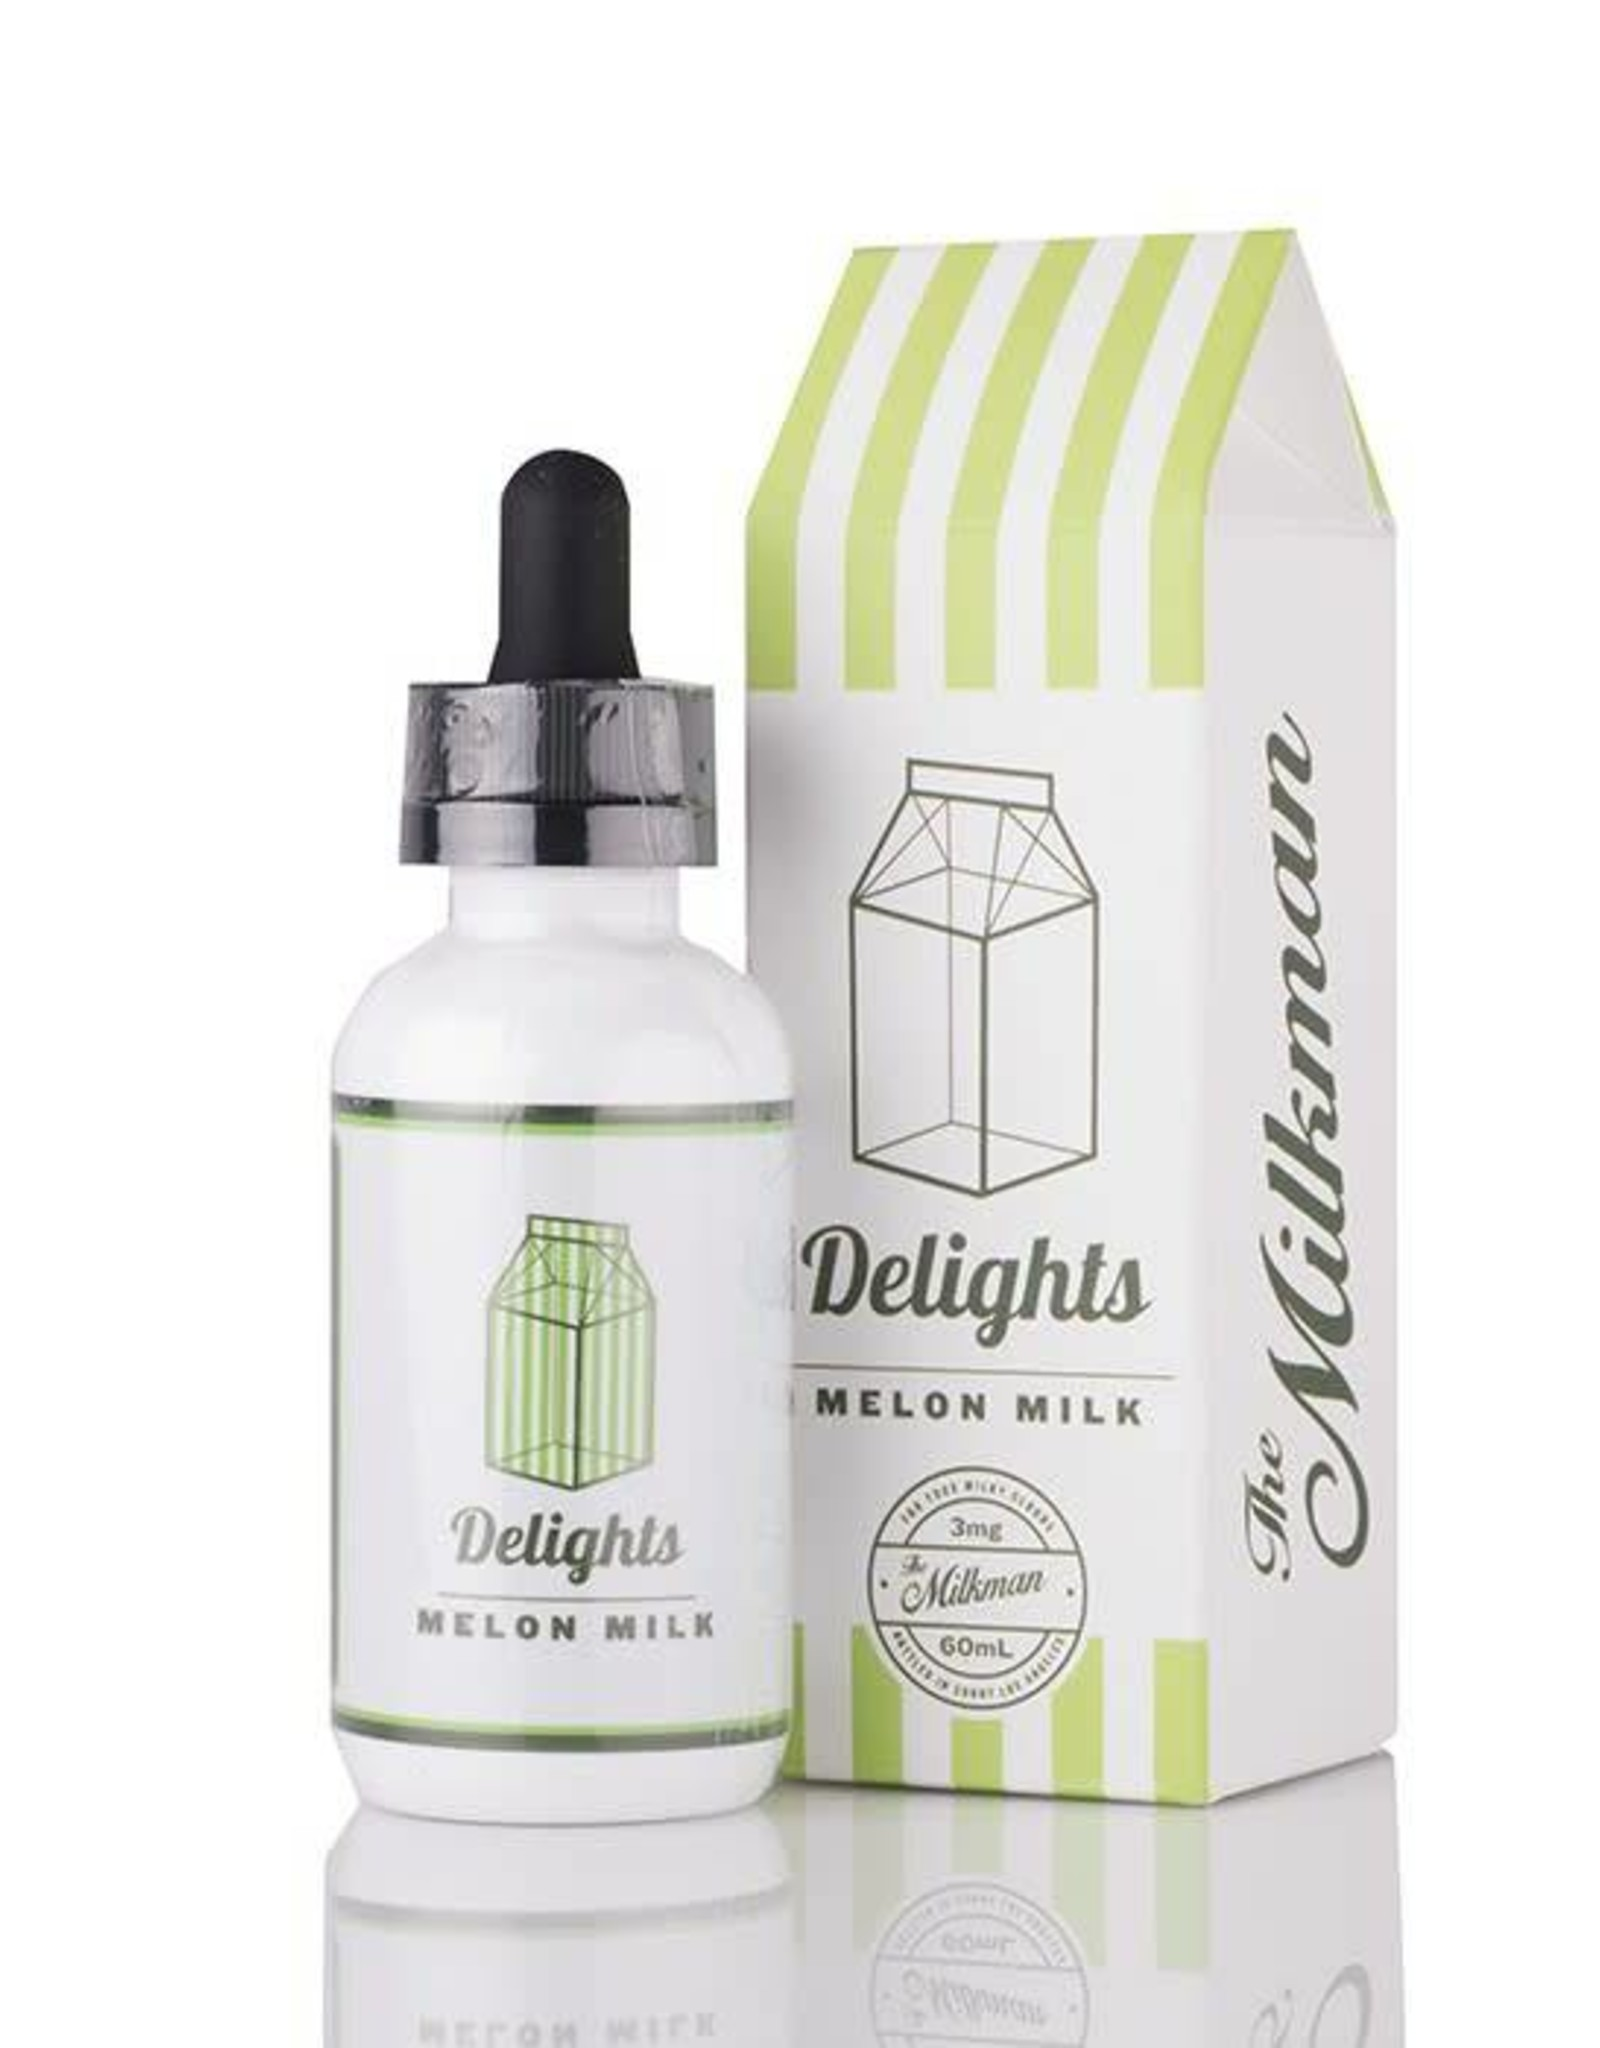 The Milkman The Milkman - Melon Milk (60mL)